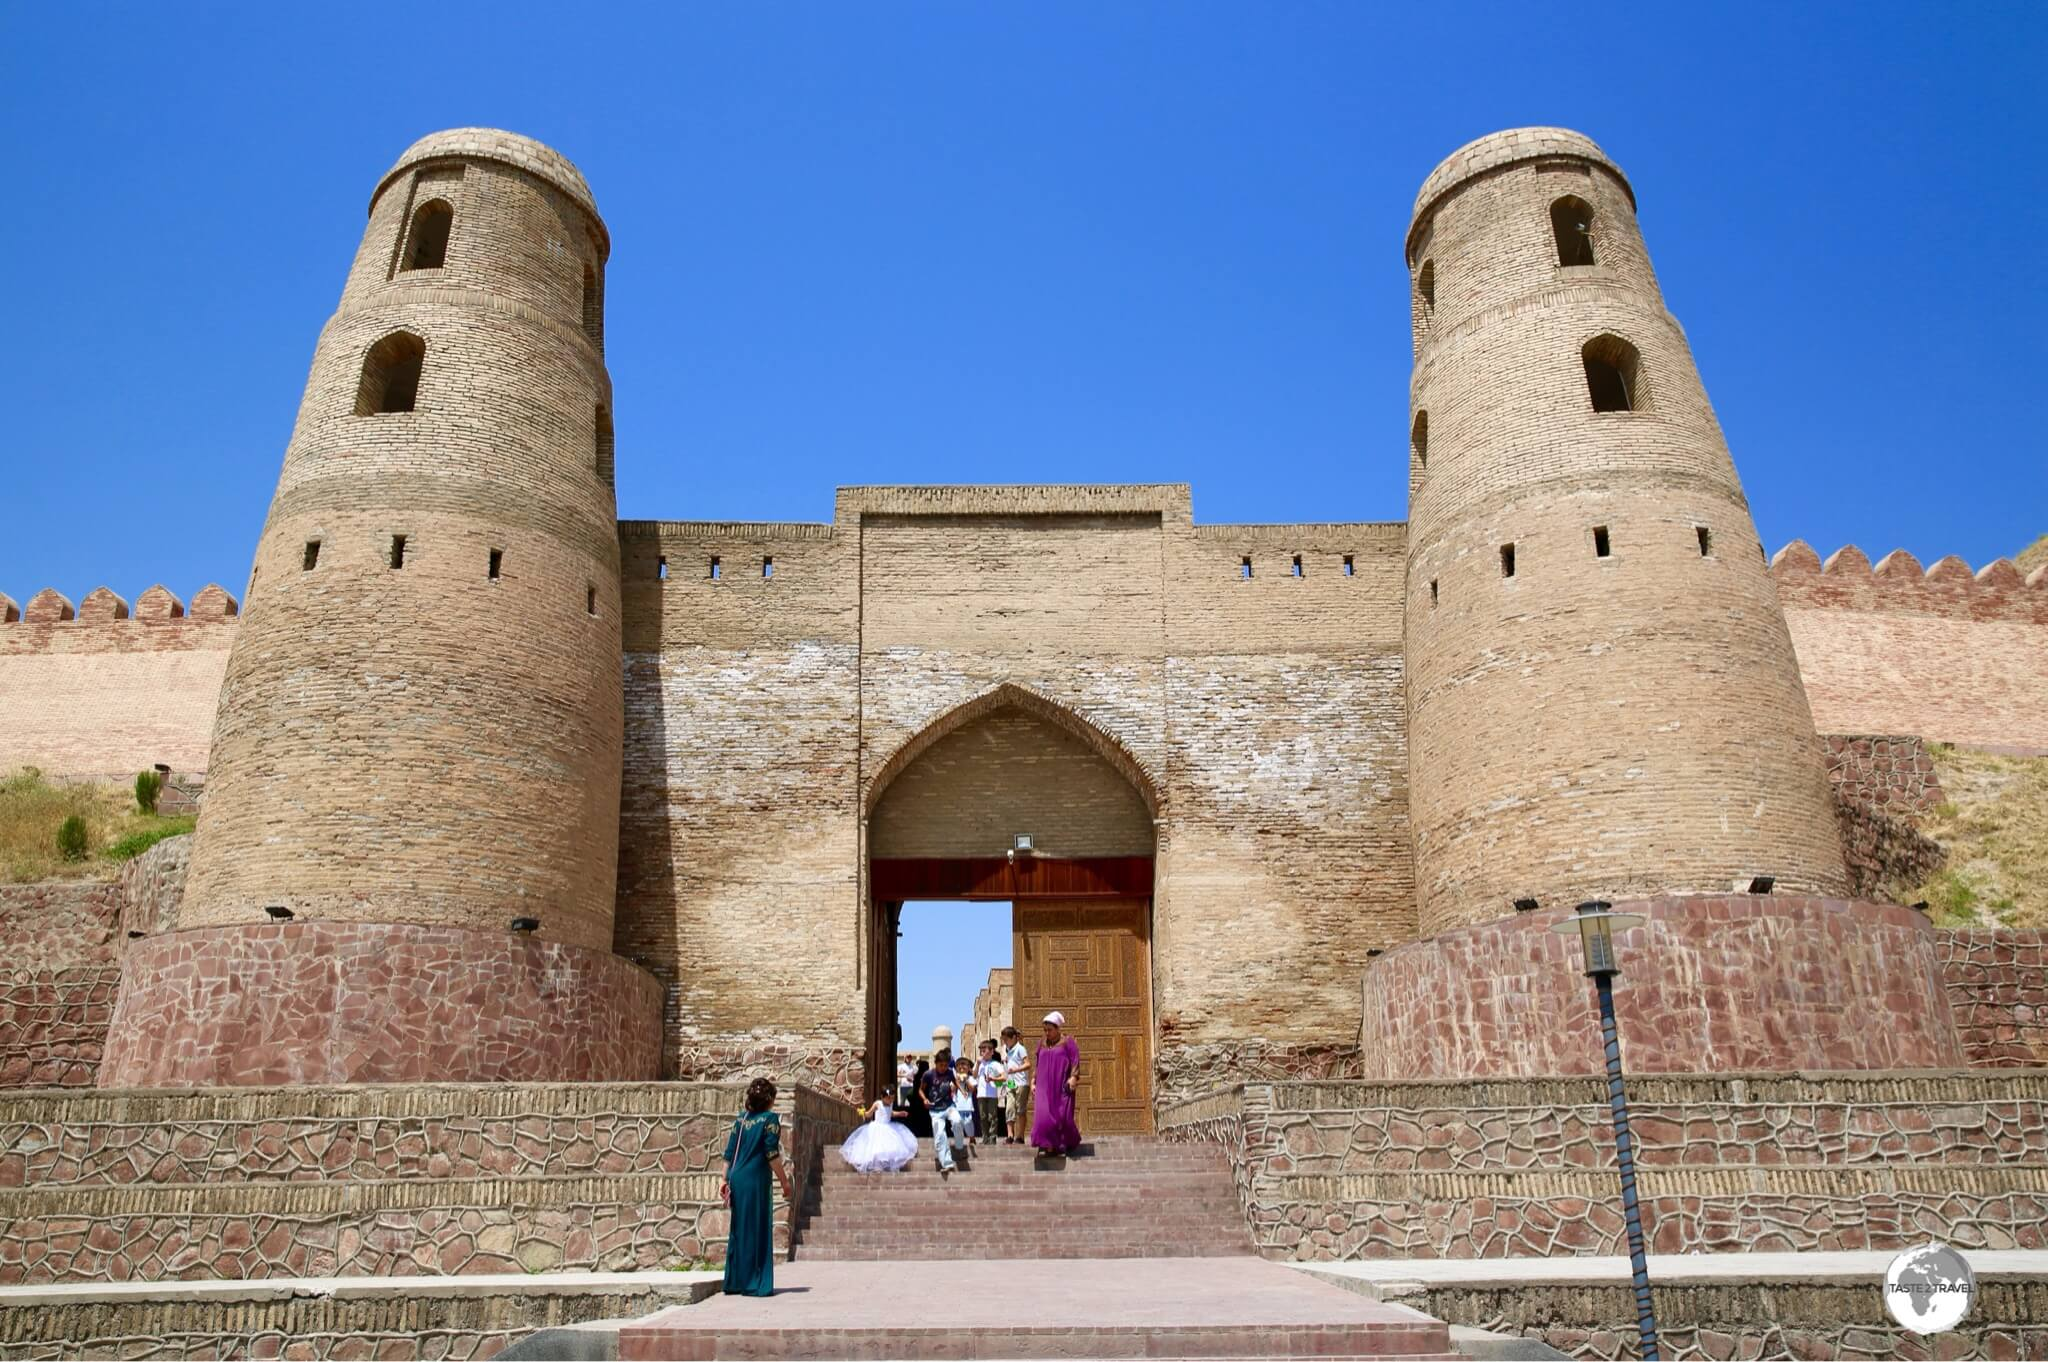 The main entrance to the Hissar fortress which lies on the outskirts of Dushanbe.